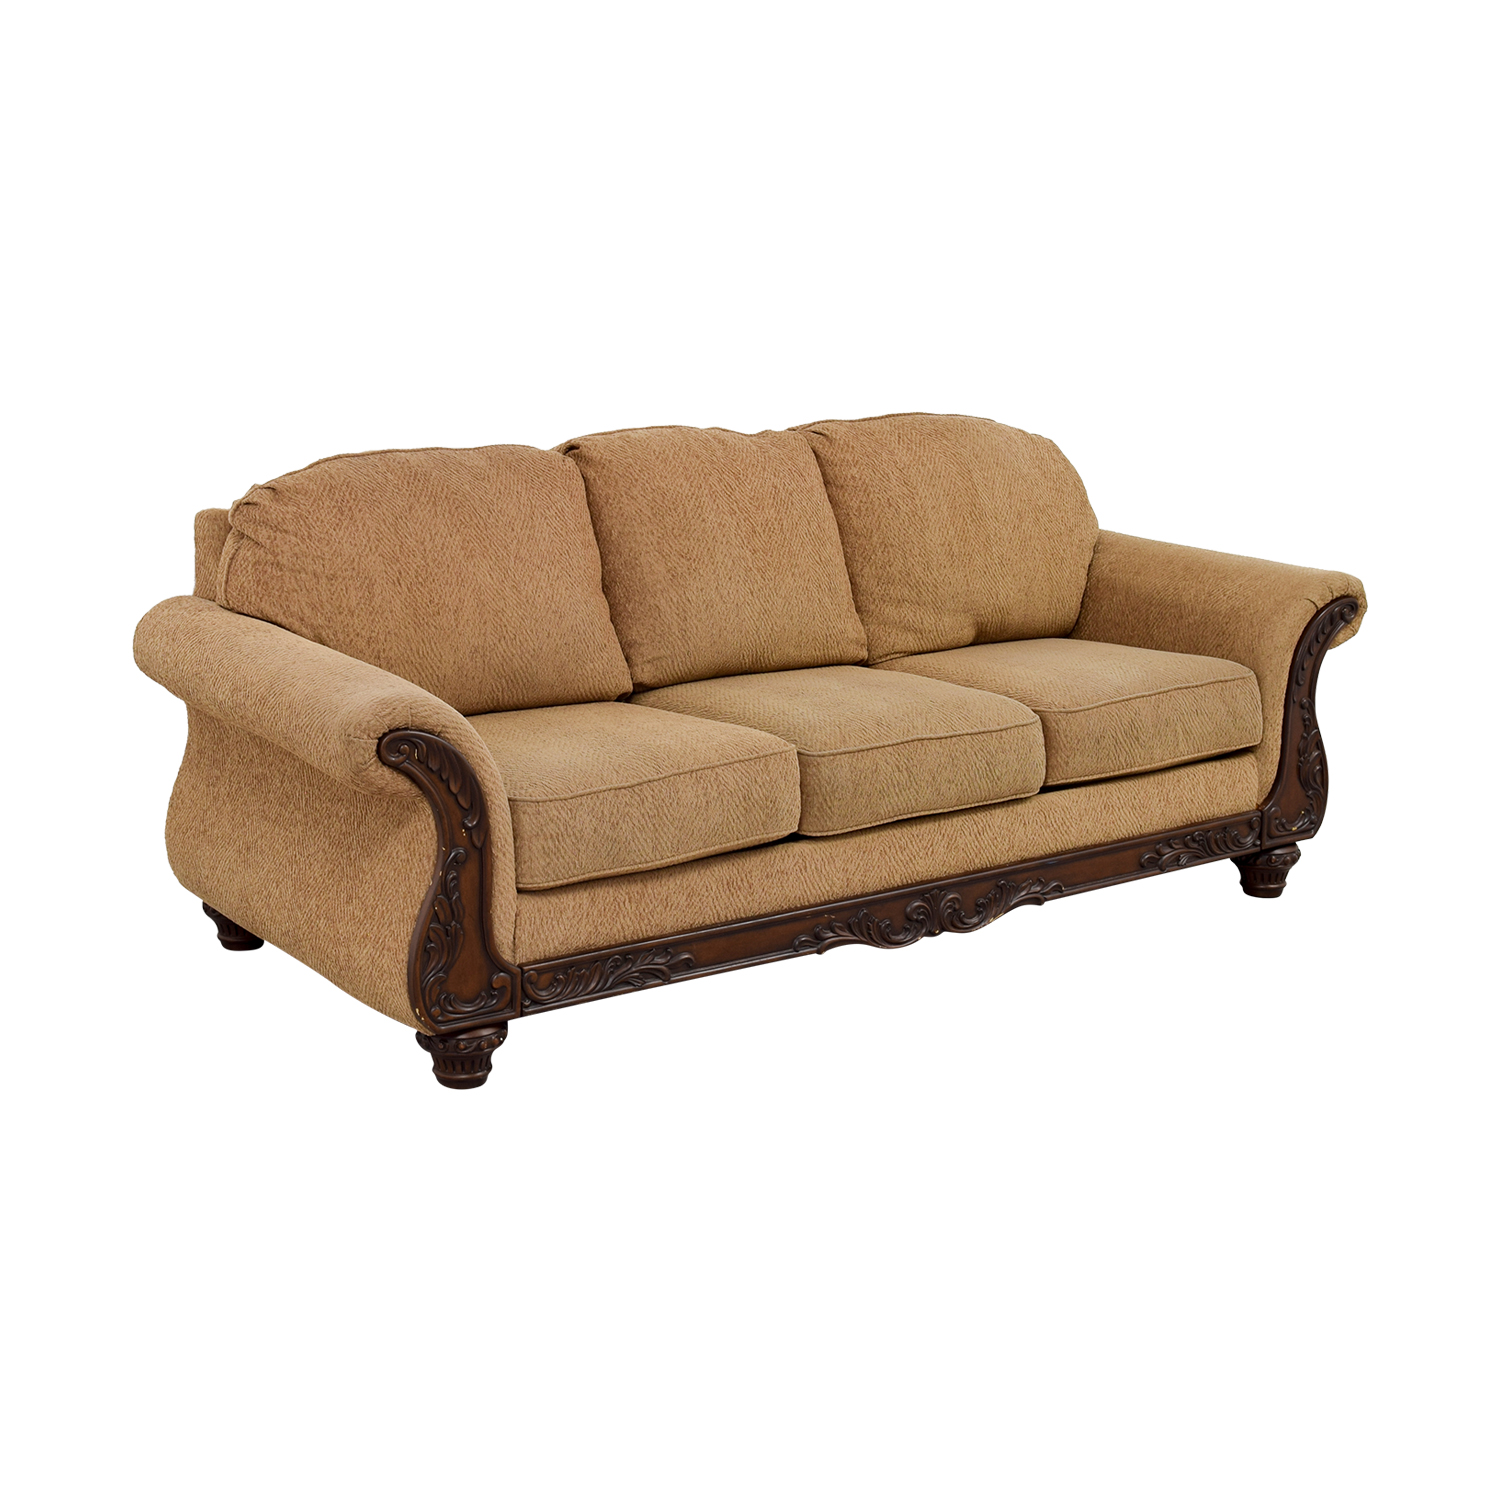 sofa pune olx support under cushions second hand wood | brokeasshome.com